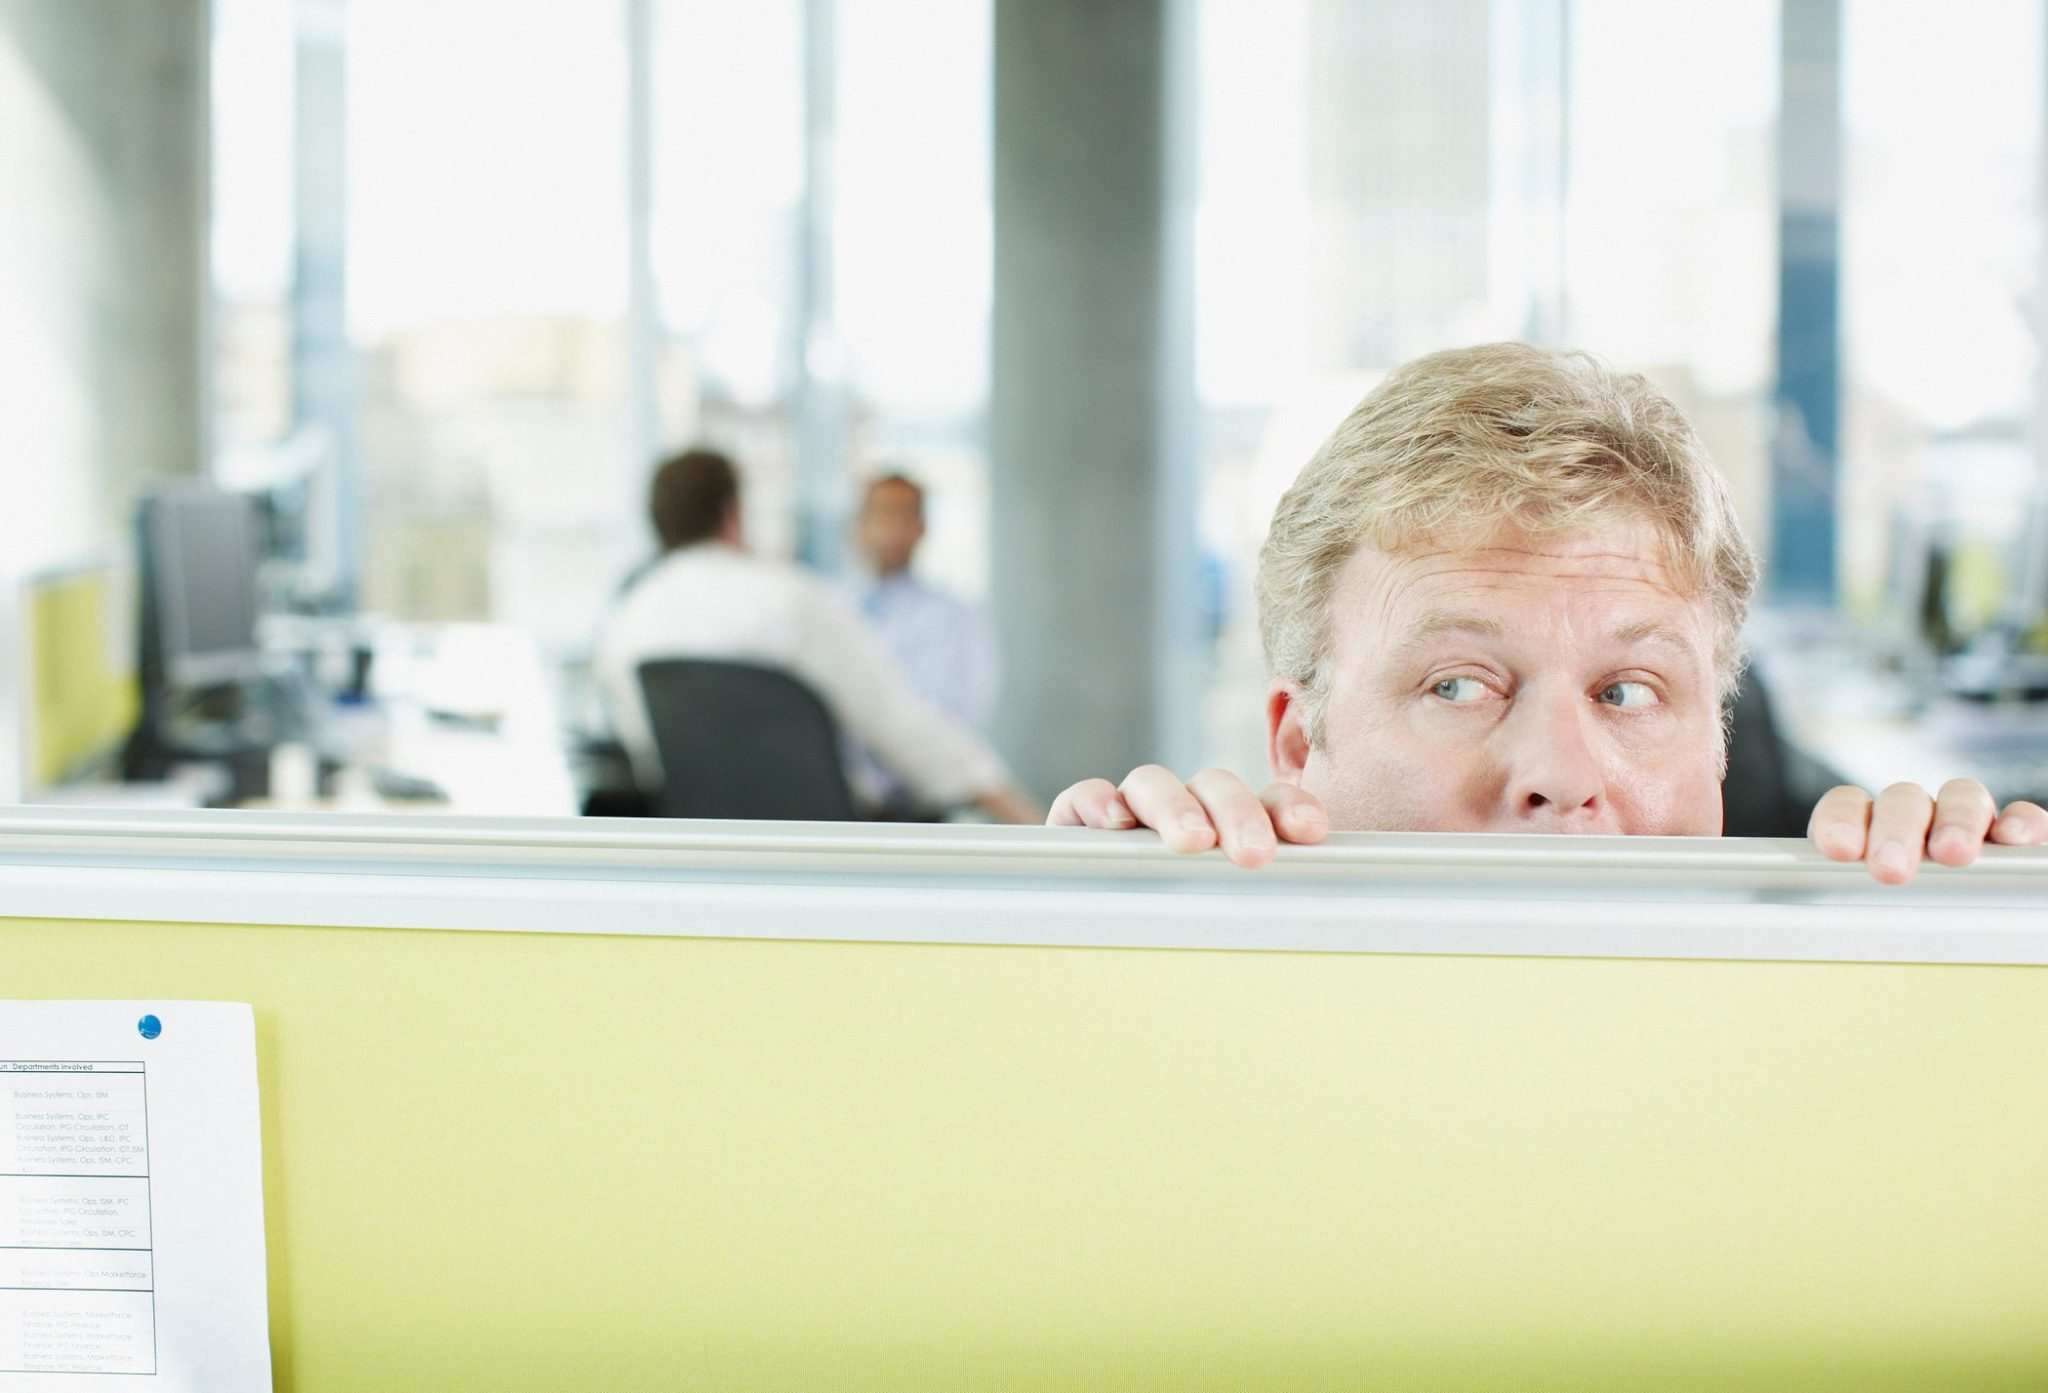 Man peering over desk